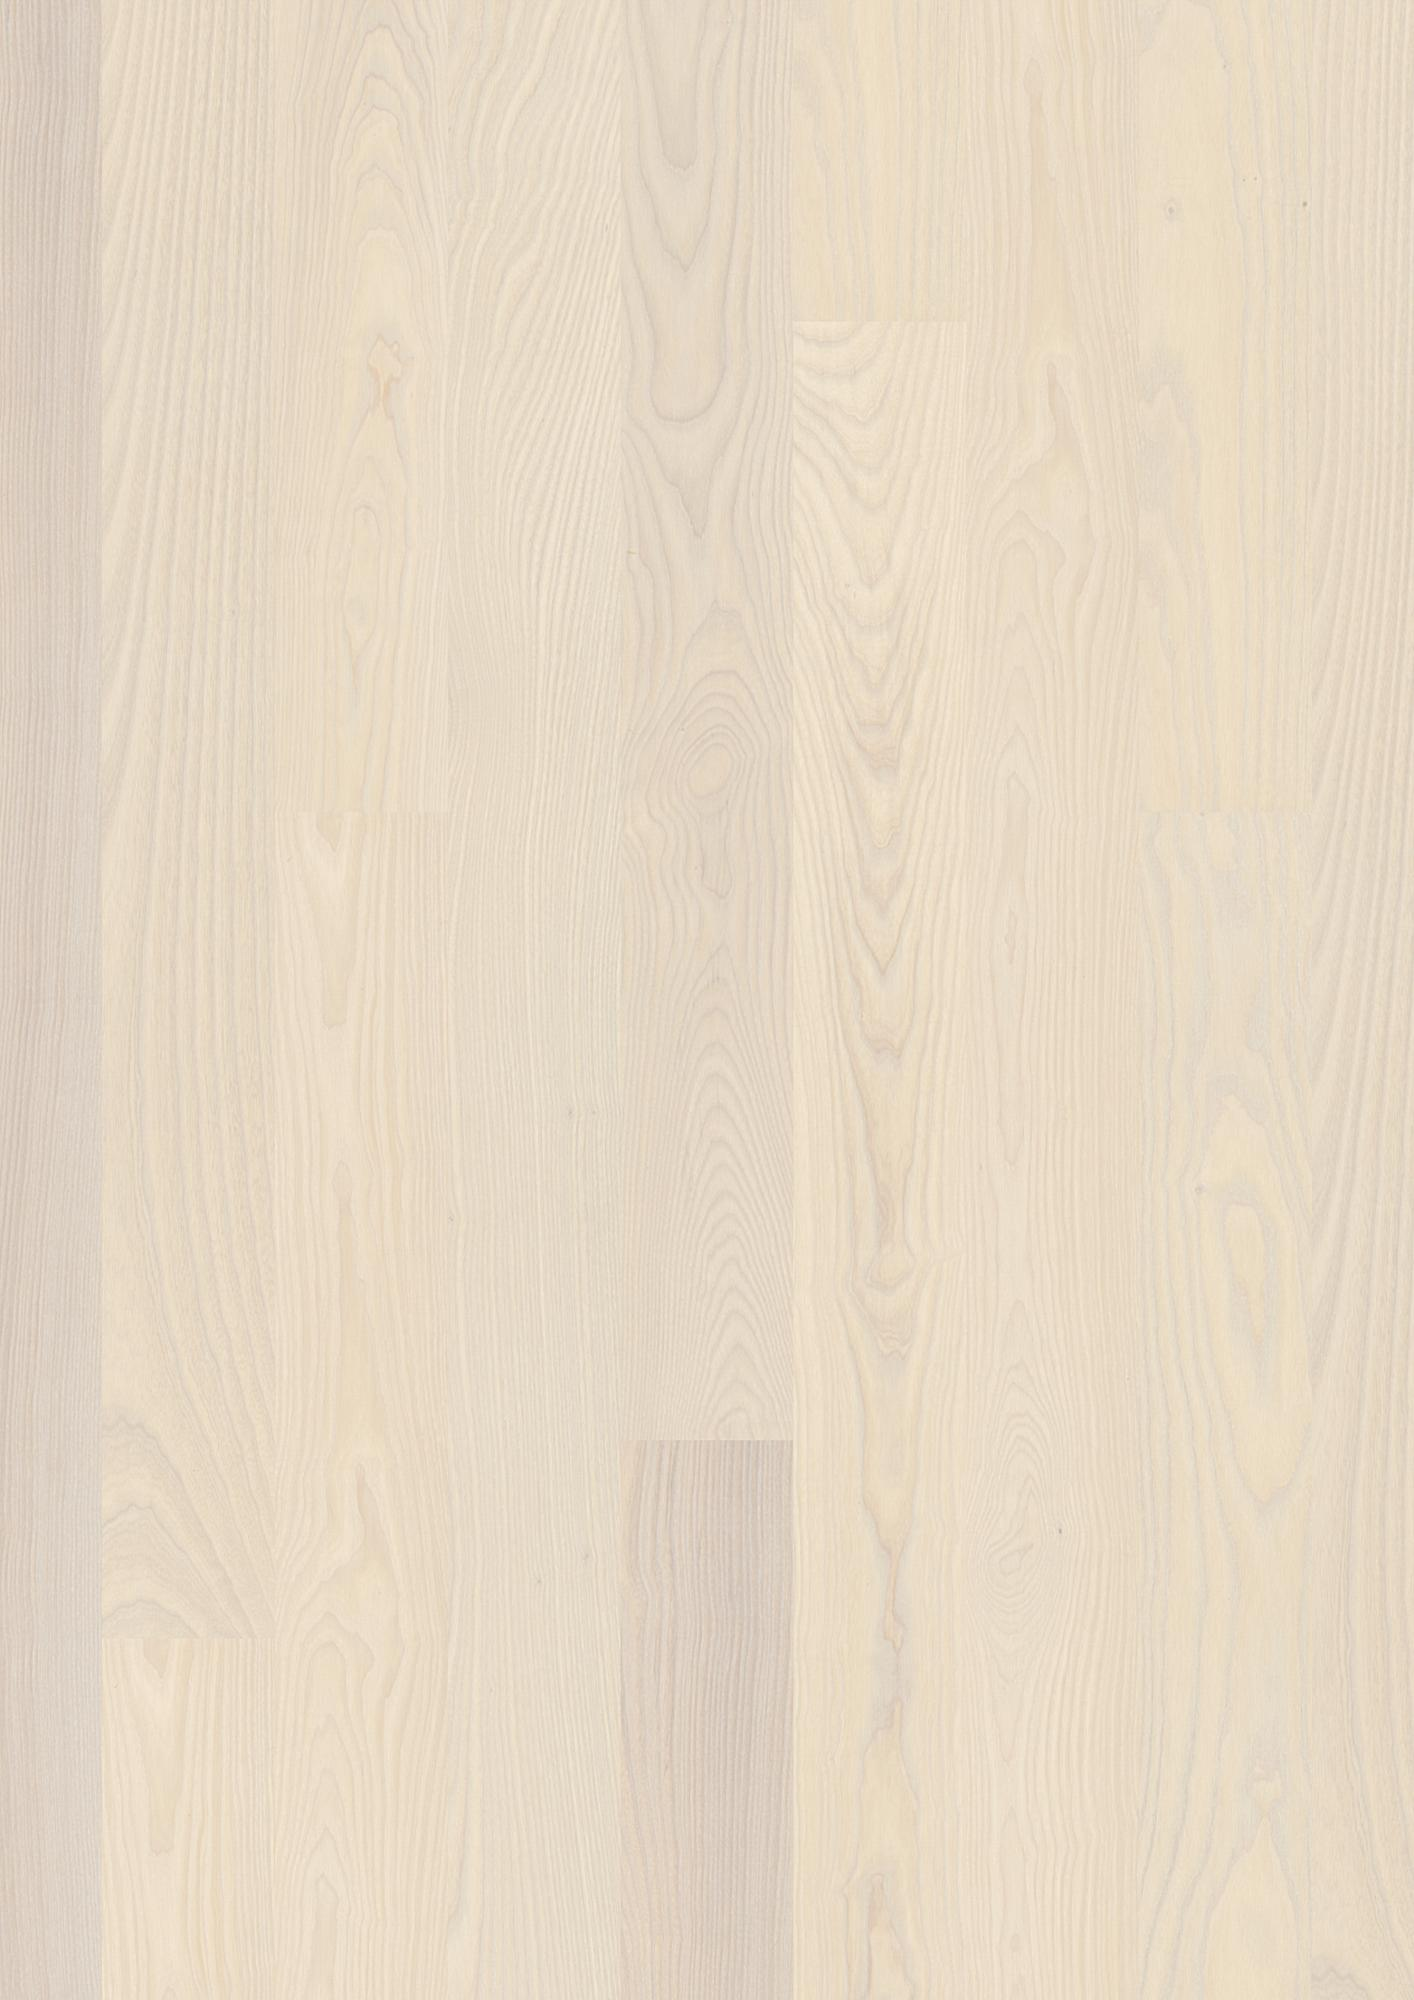 Ash Nature white, Live Pure lacquer white, Brushed, Beveled 2V, Plank 138, 14x139x2200mm